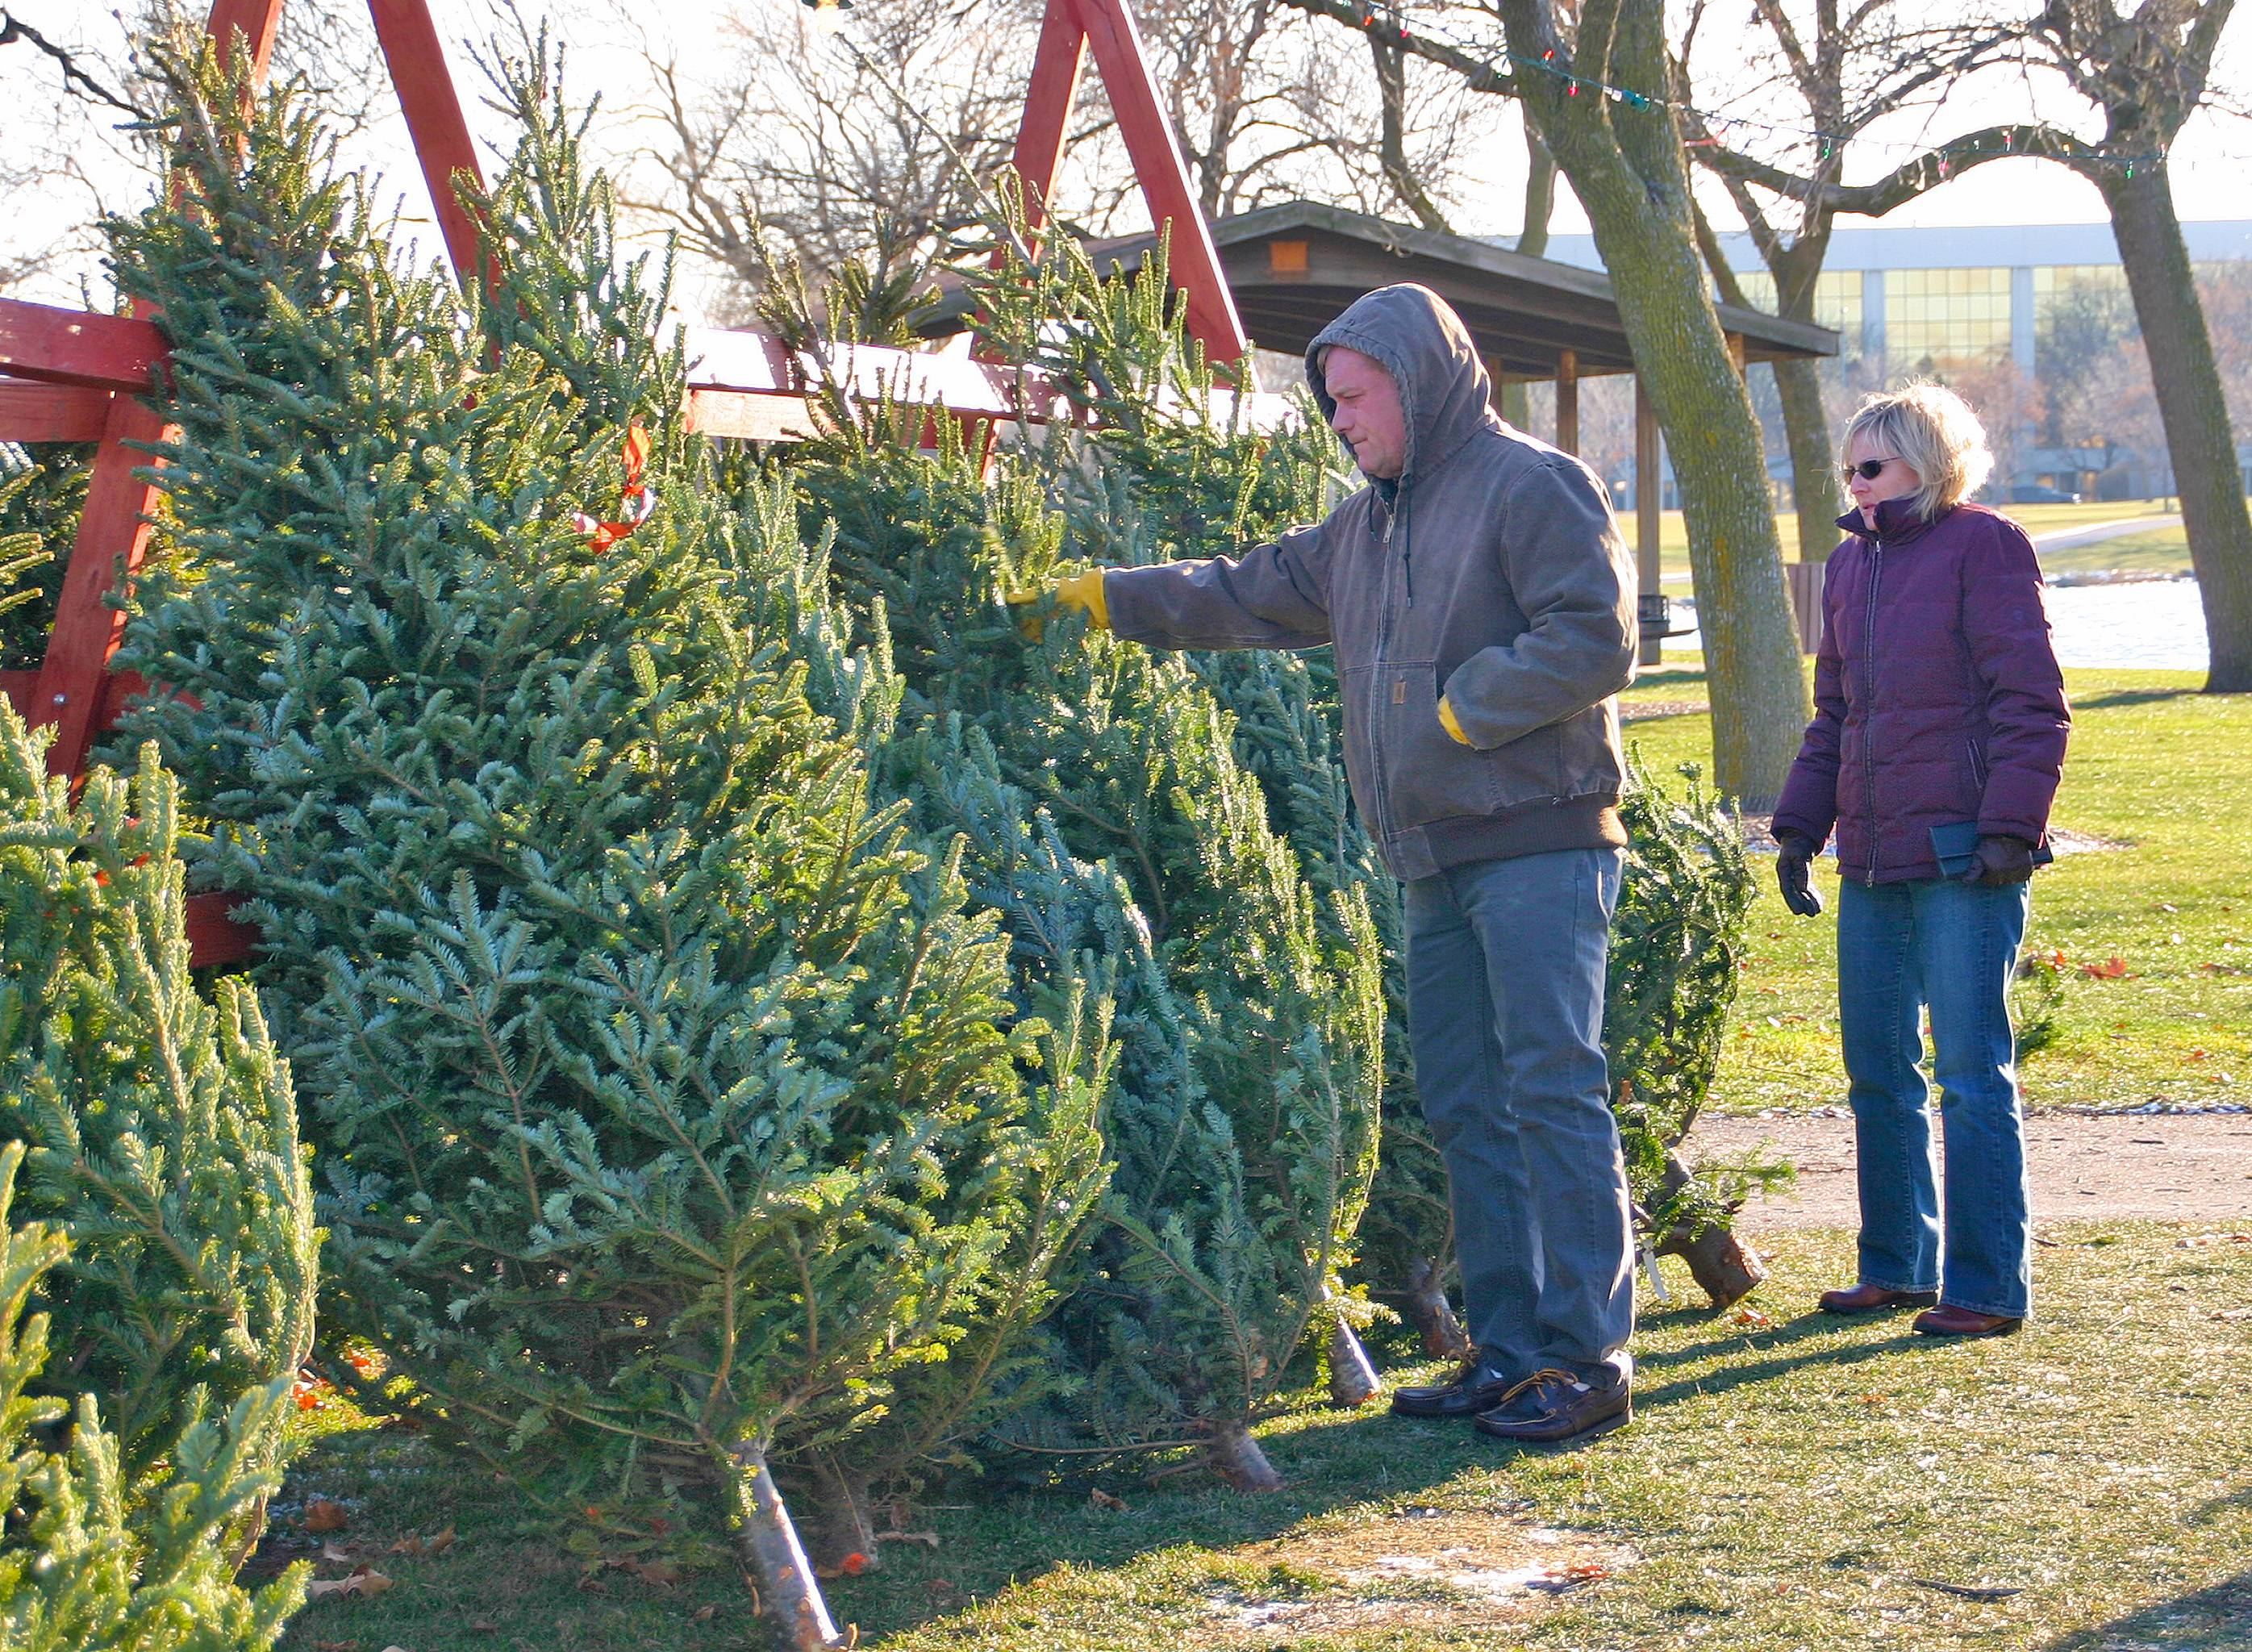 A couple browses the 2011 Optimist Holiday Tree Lot that features Balsam Firs, Scotch Pines, and Frasier Firs, seen here.